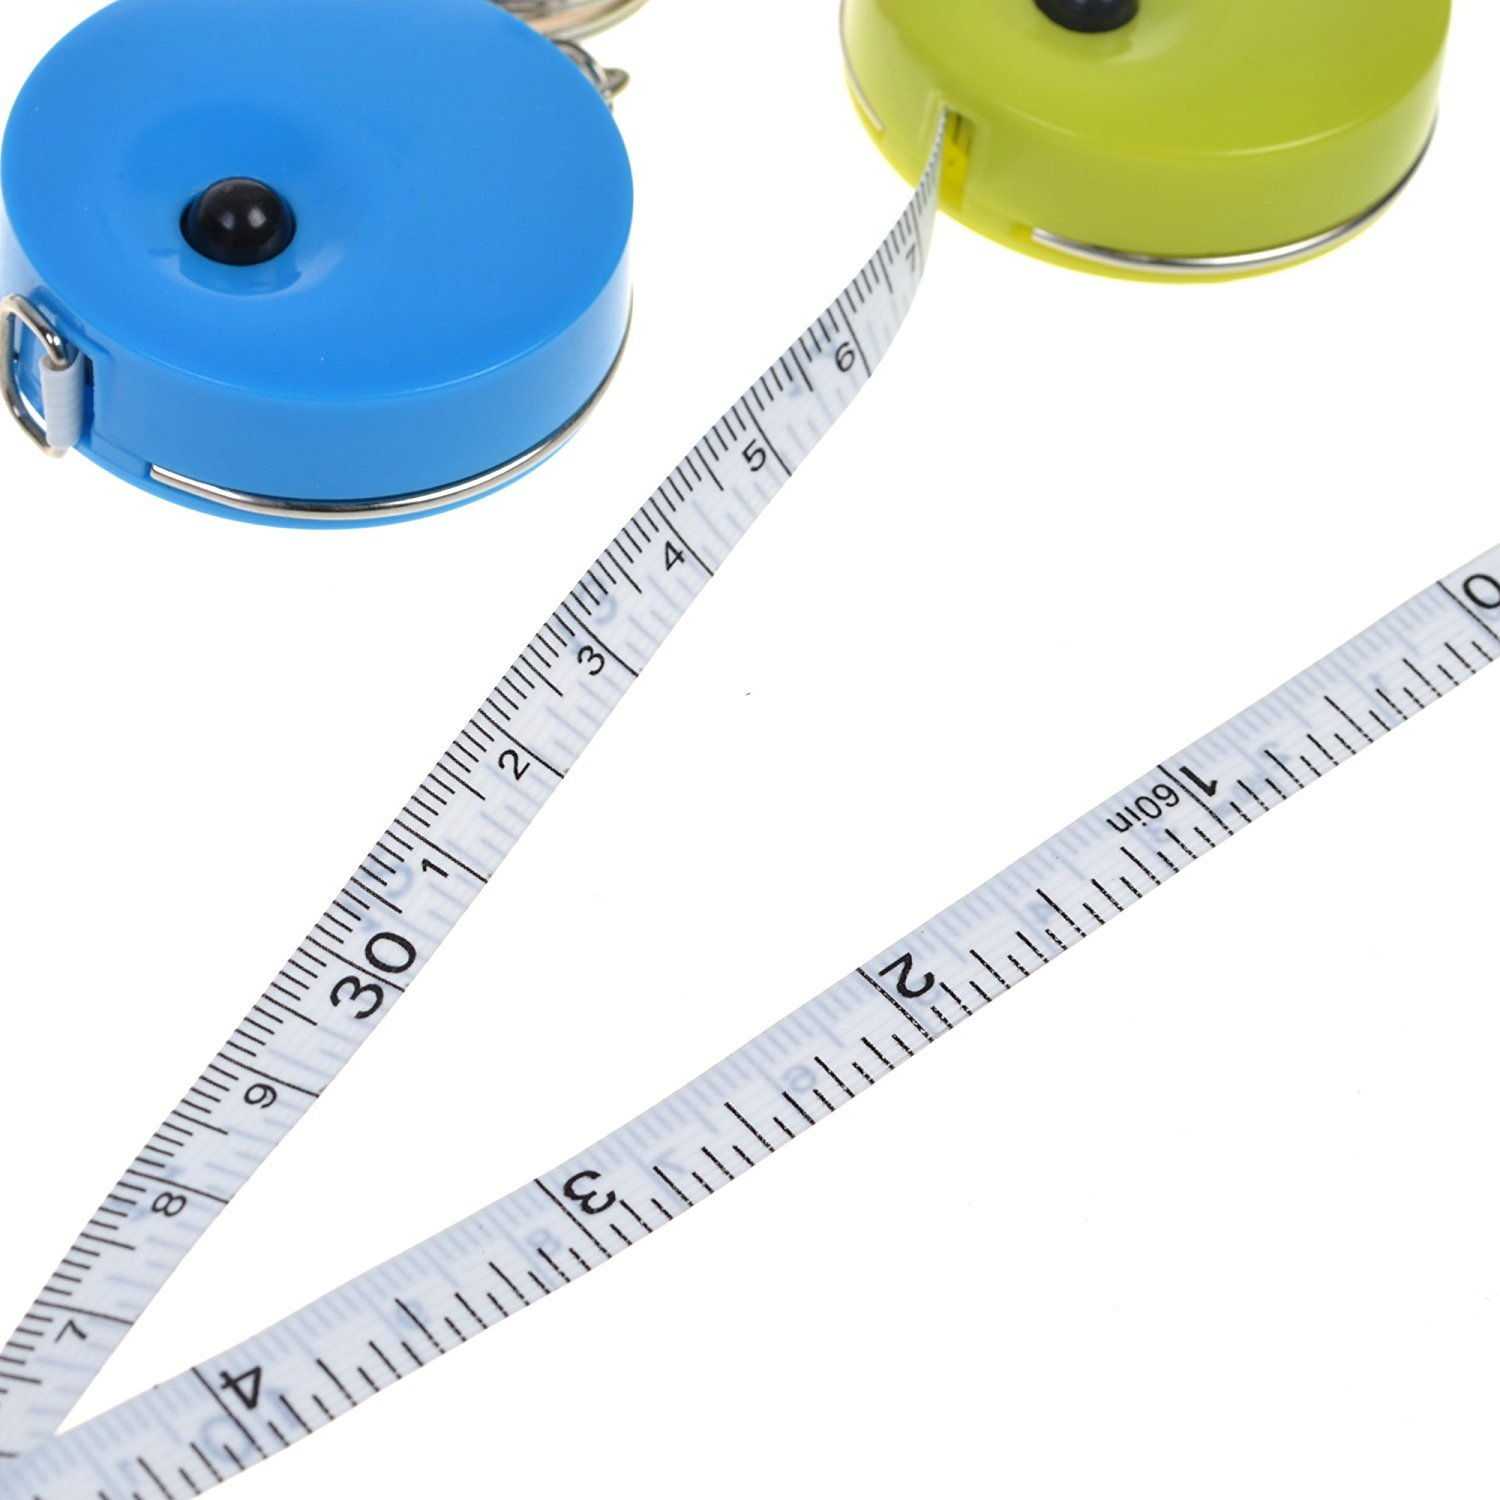 Flexible Ruler for Weight Loss Body Measurement Sewing Craft 60-Inch//150cm Double-Scale Versatile Soft Cloth Measuring Tape 10Pcs Candy colors Candy Color Retractable Tape Measure with Keychain